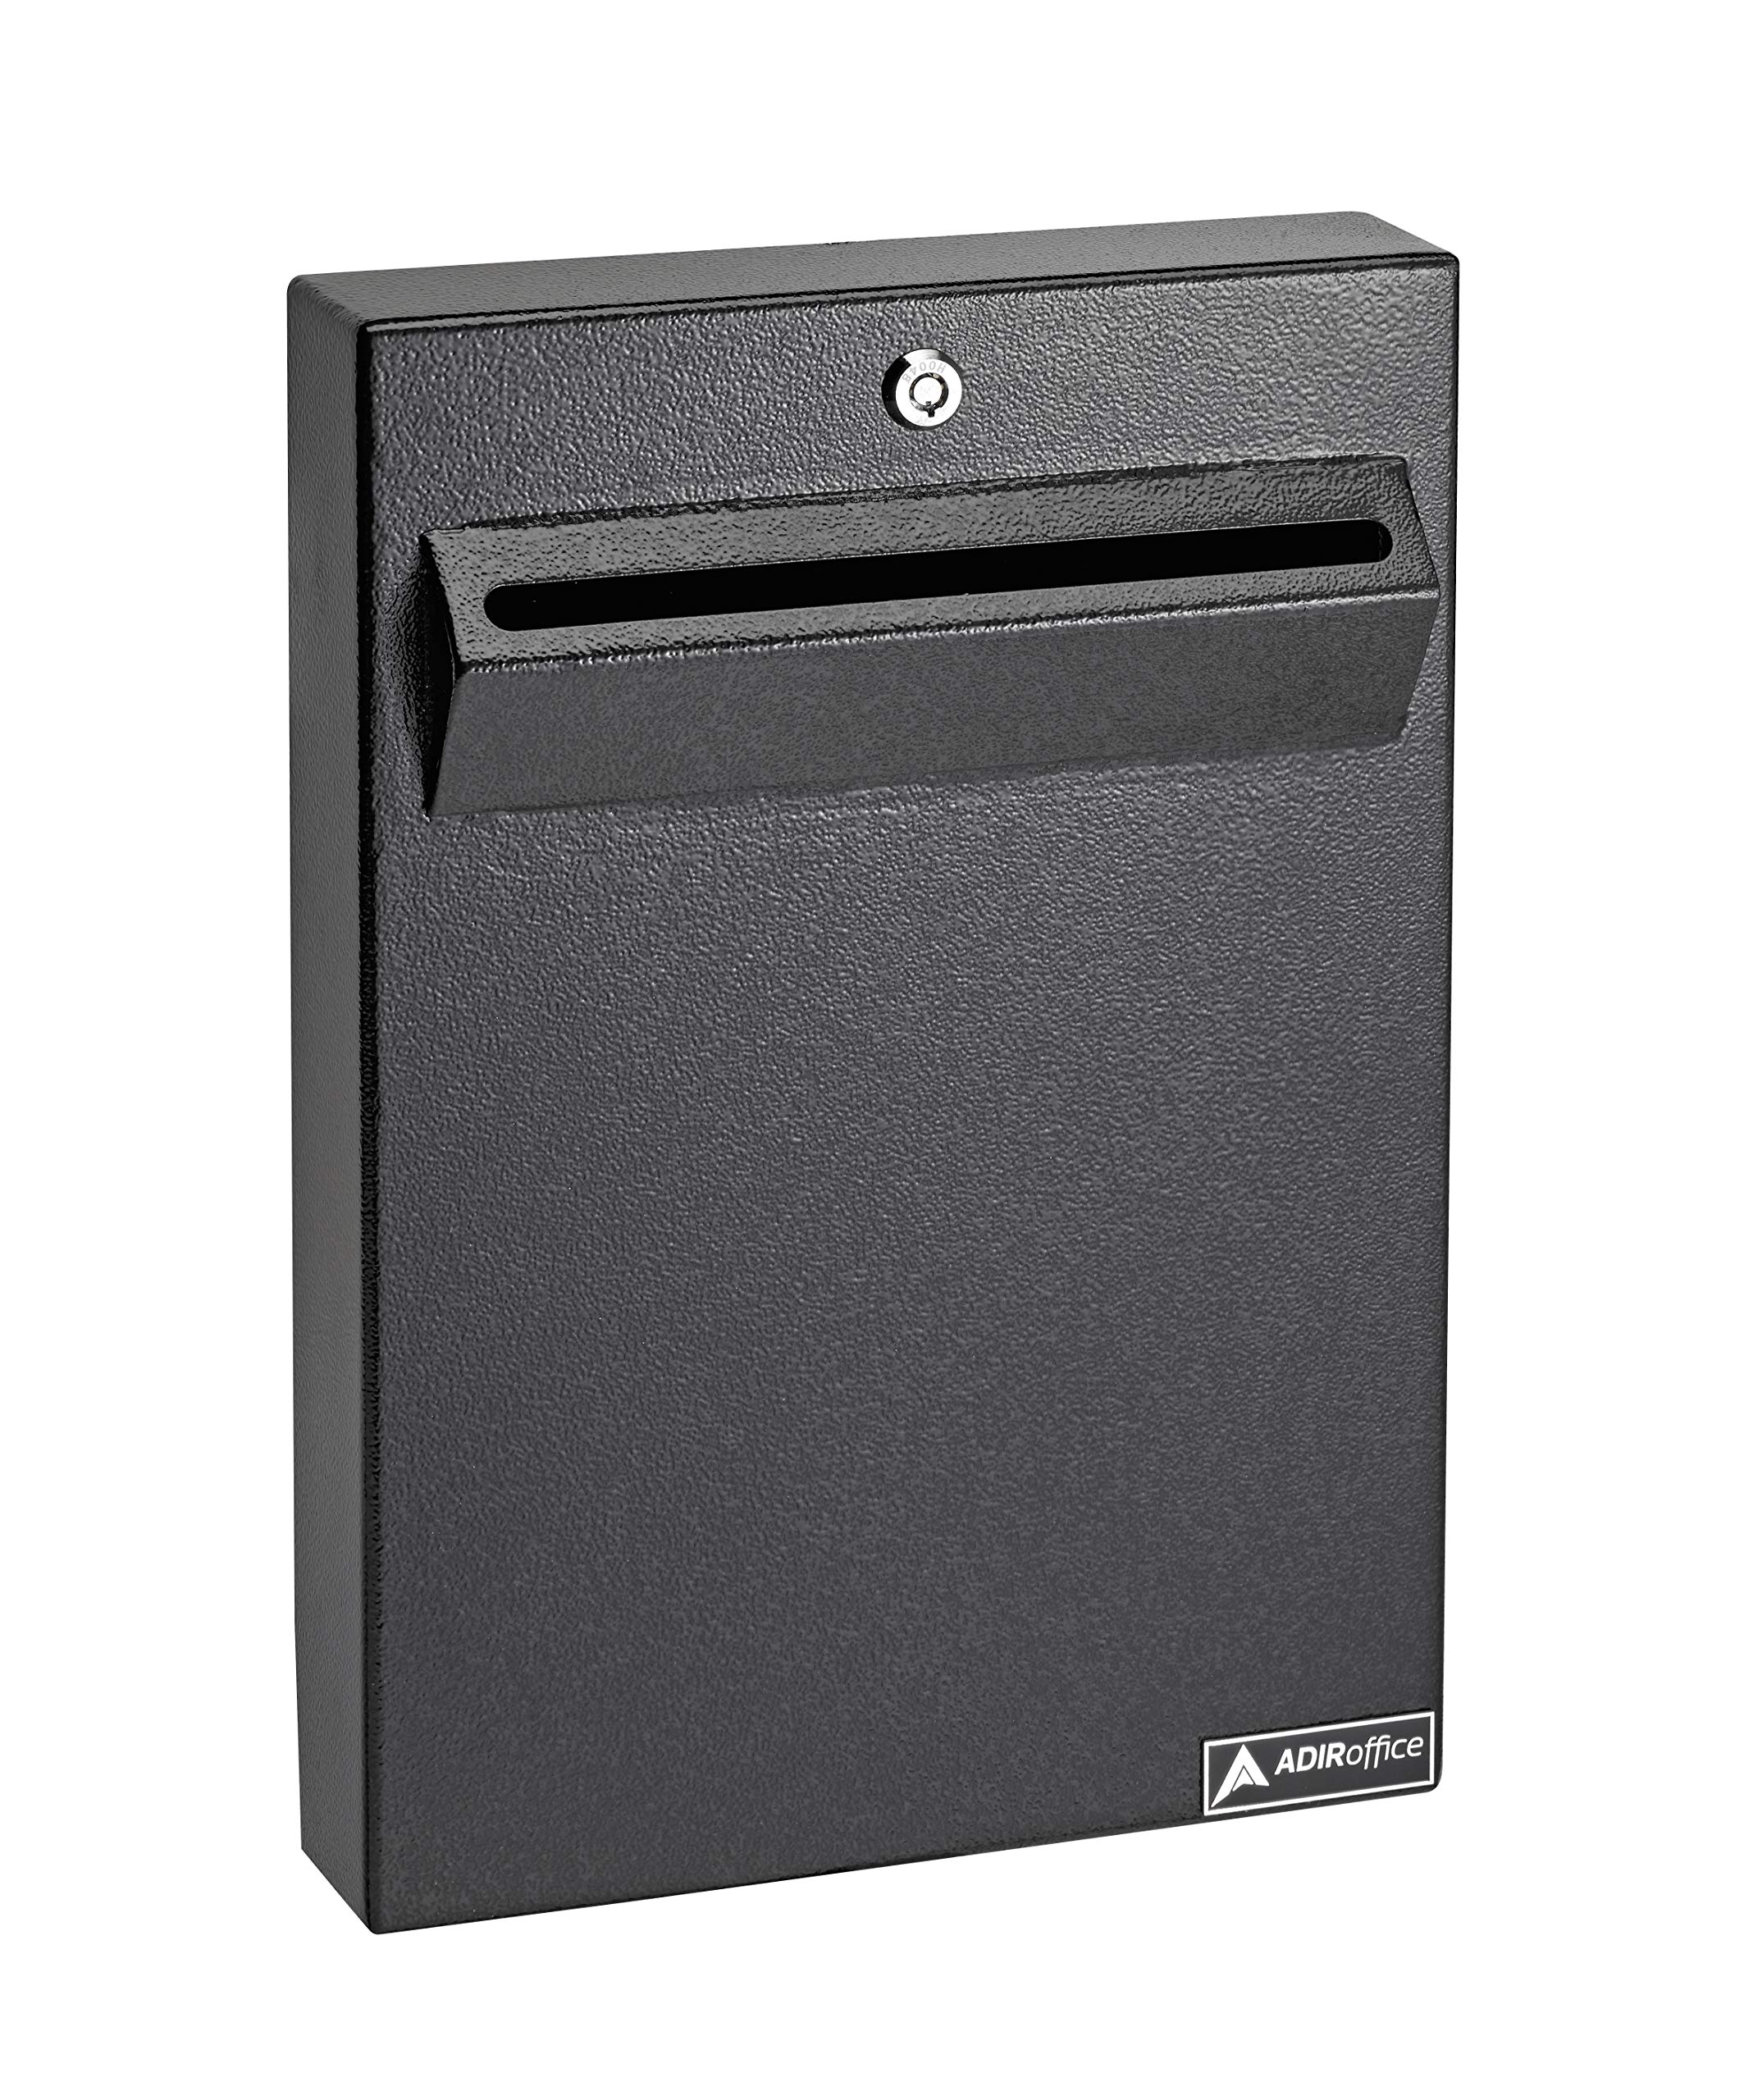 AdirOffice Wall Mount Drop Box - Heavy Duty Secured Storage with Lock - for Commercial Home Office or Business Use (Black)